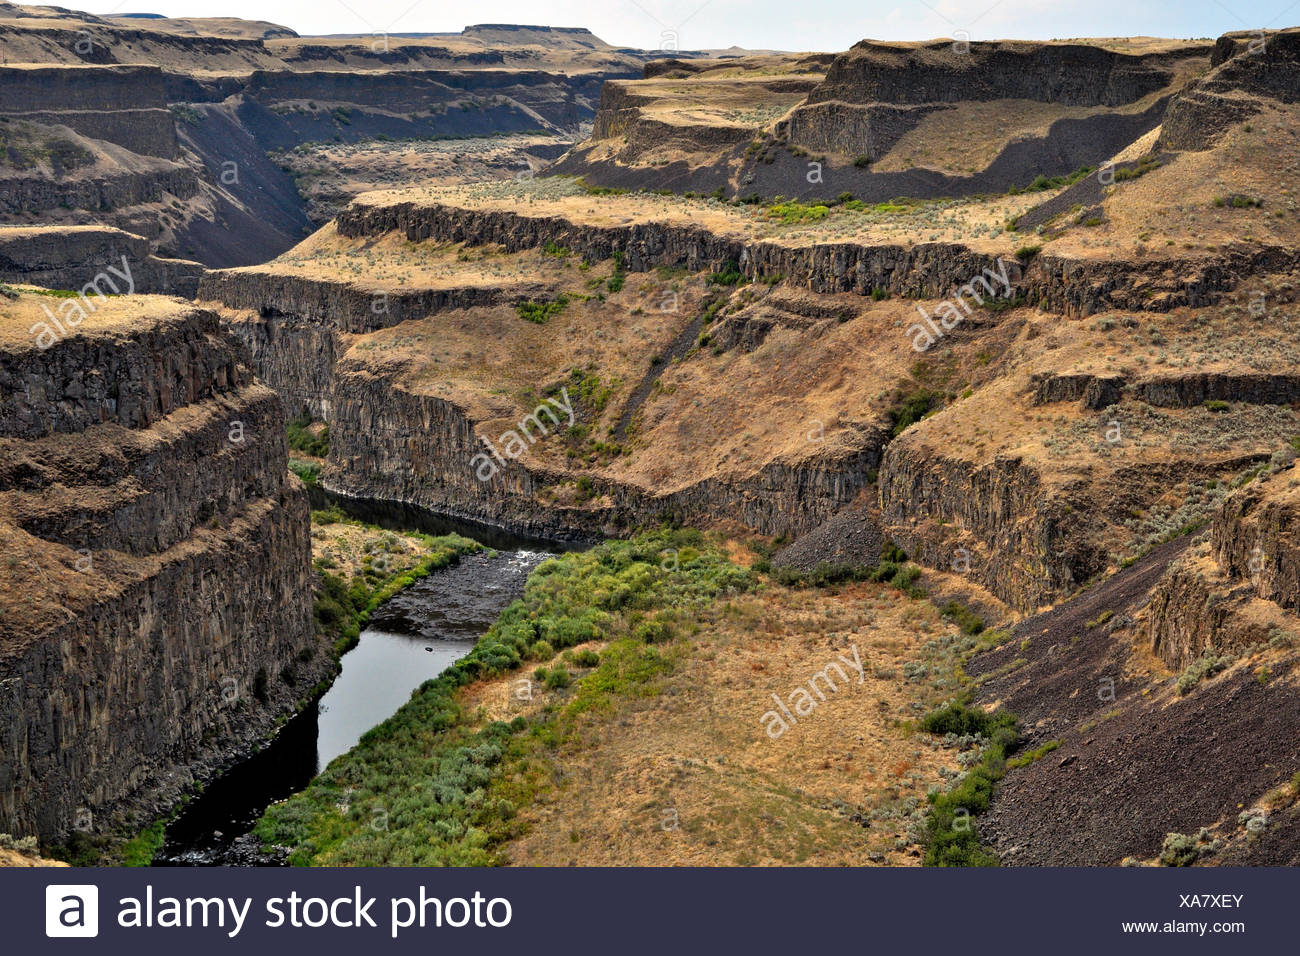 Basalt organs of traps tray Columbia - Washington USA In the late Miocene and early Pleistocene one of the largest outpourings of lava ever known Earth happened. 160 000 km2 of the surface of the Pacific Northwest were drowned to give birth to a large ign - Stock Image